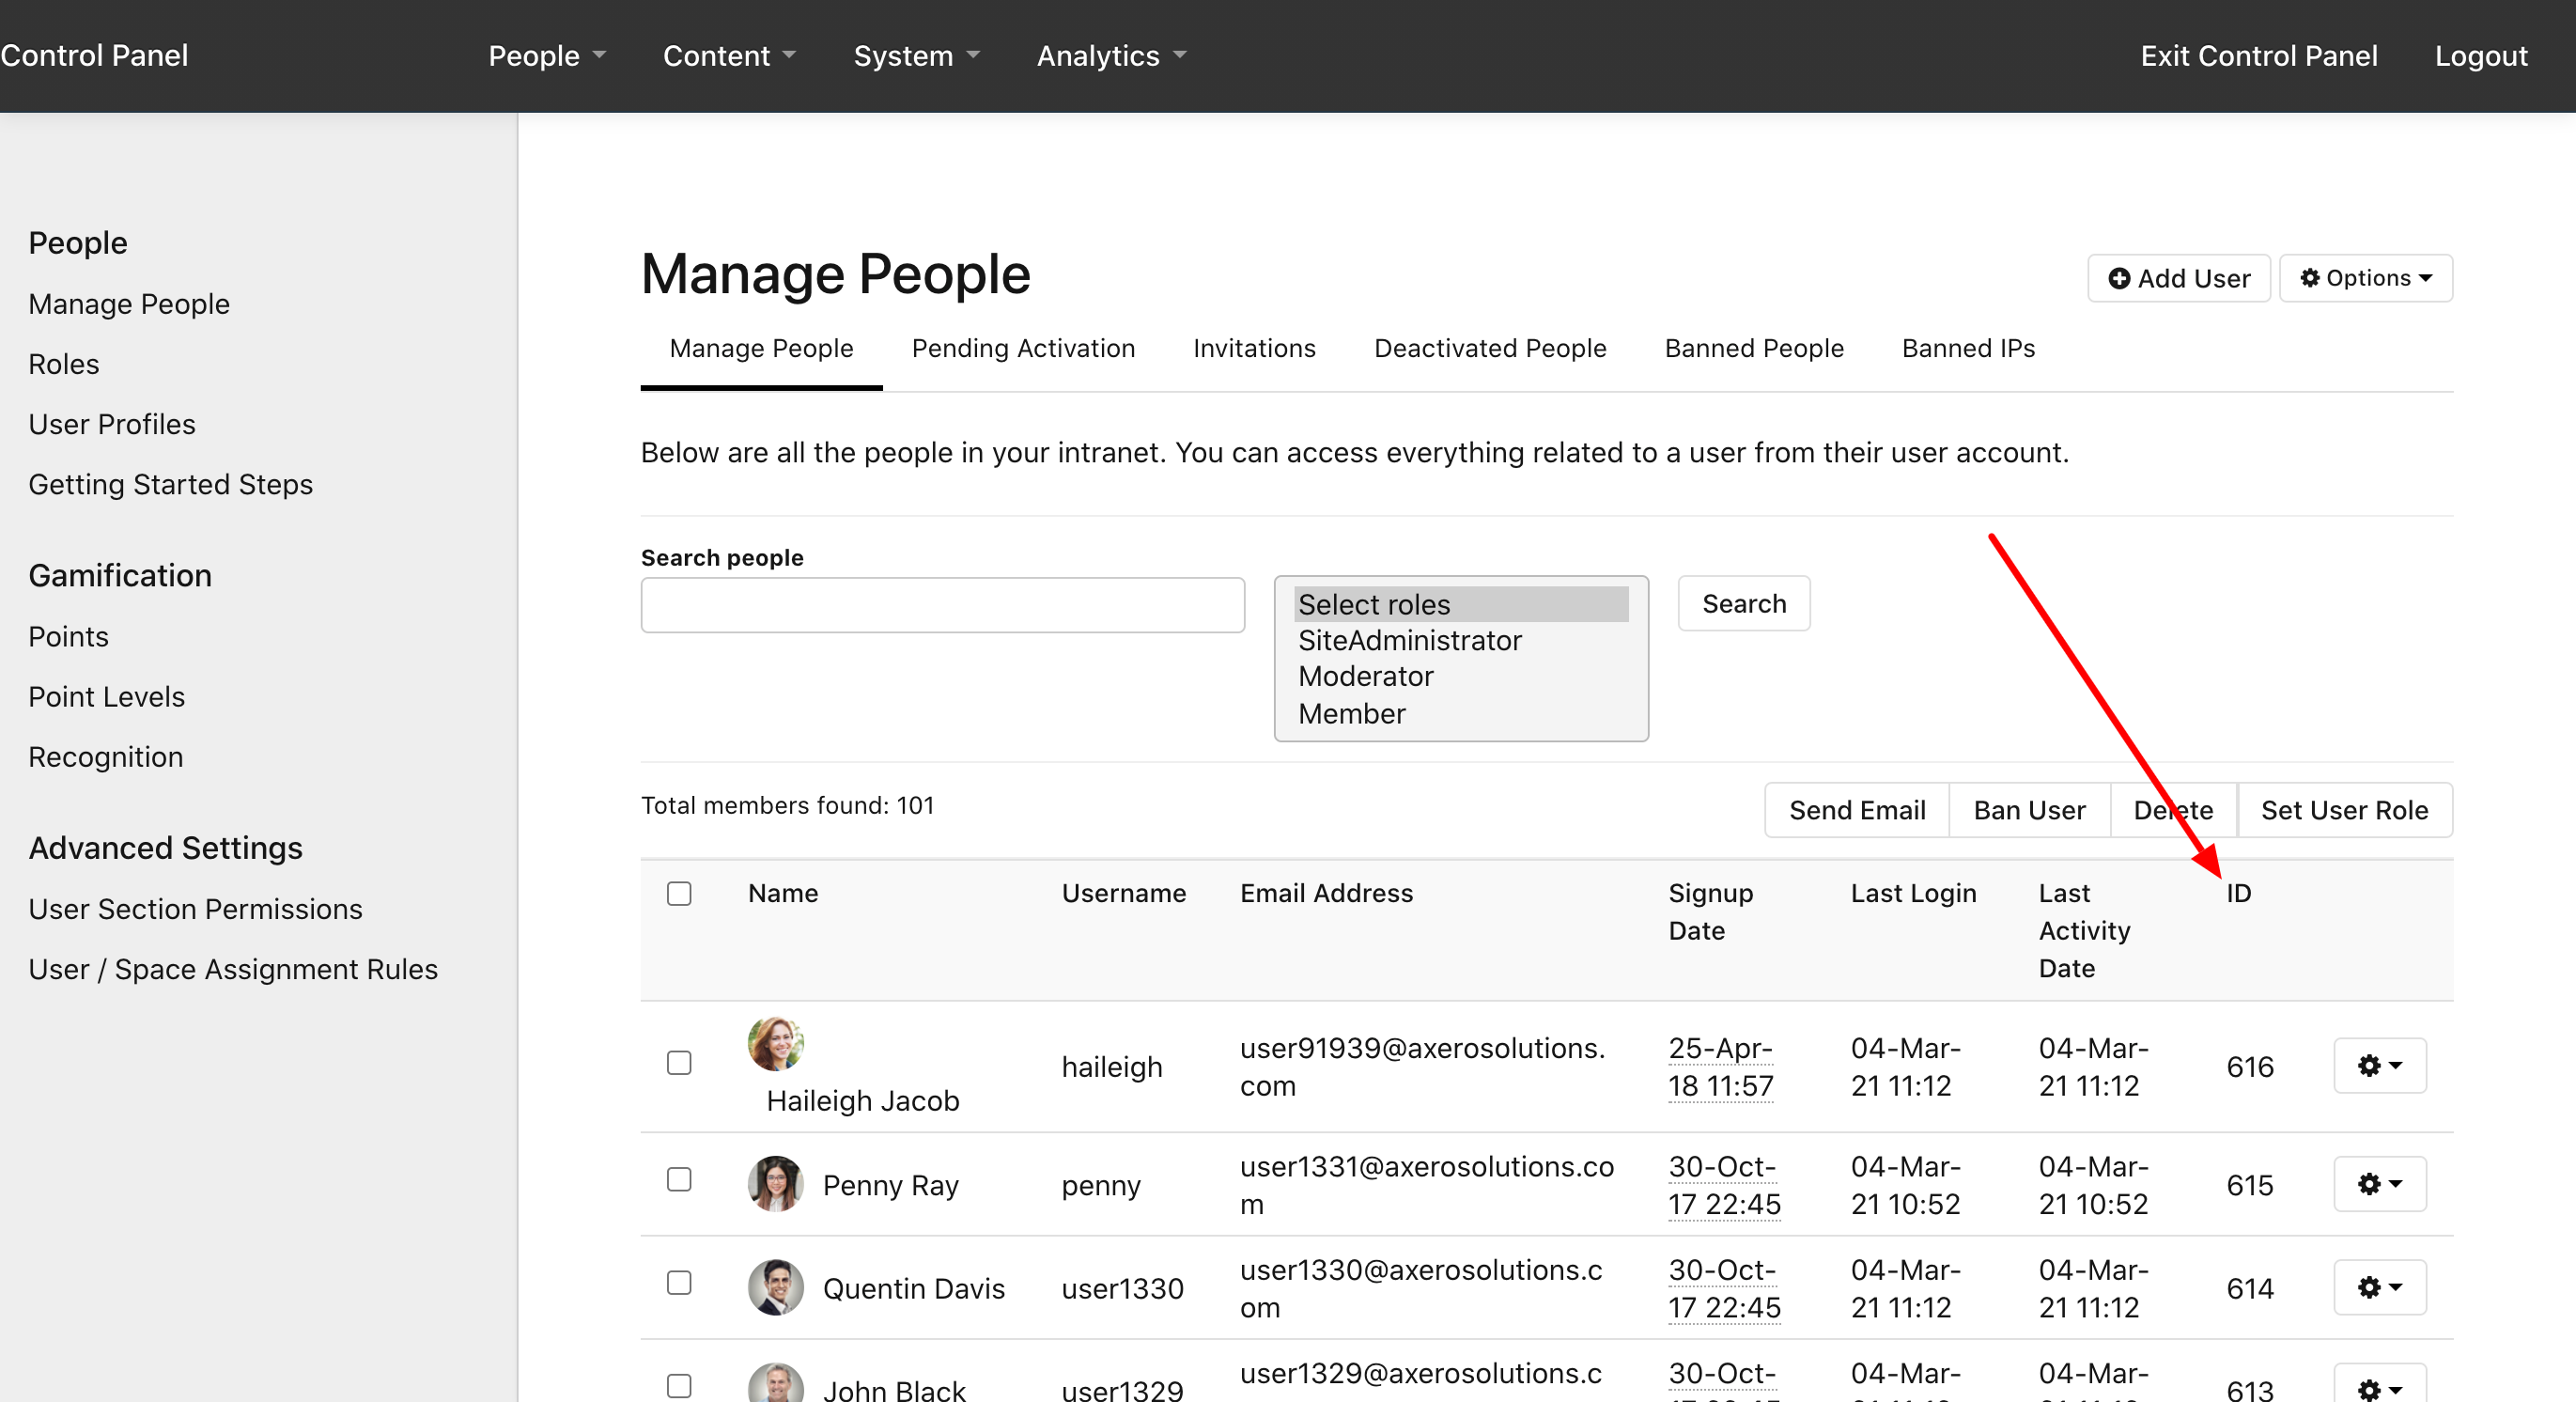 User IDs in Manage People